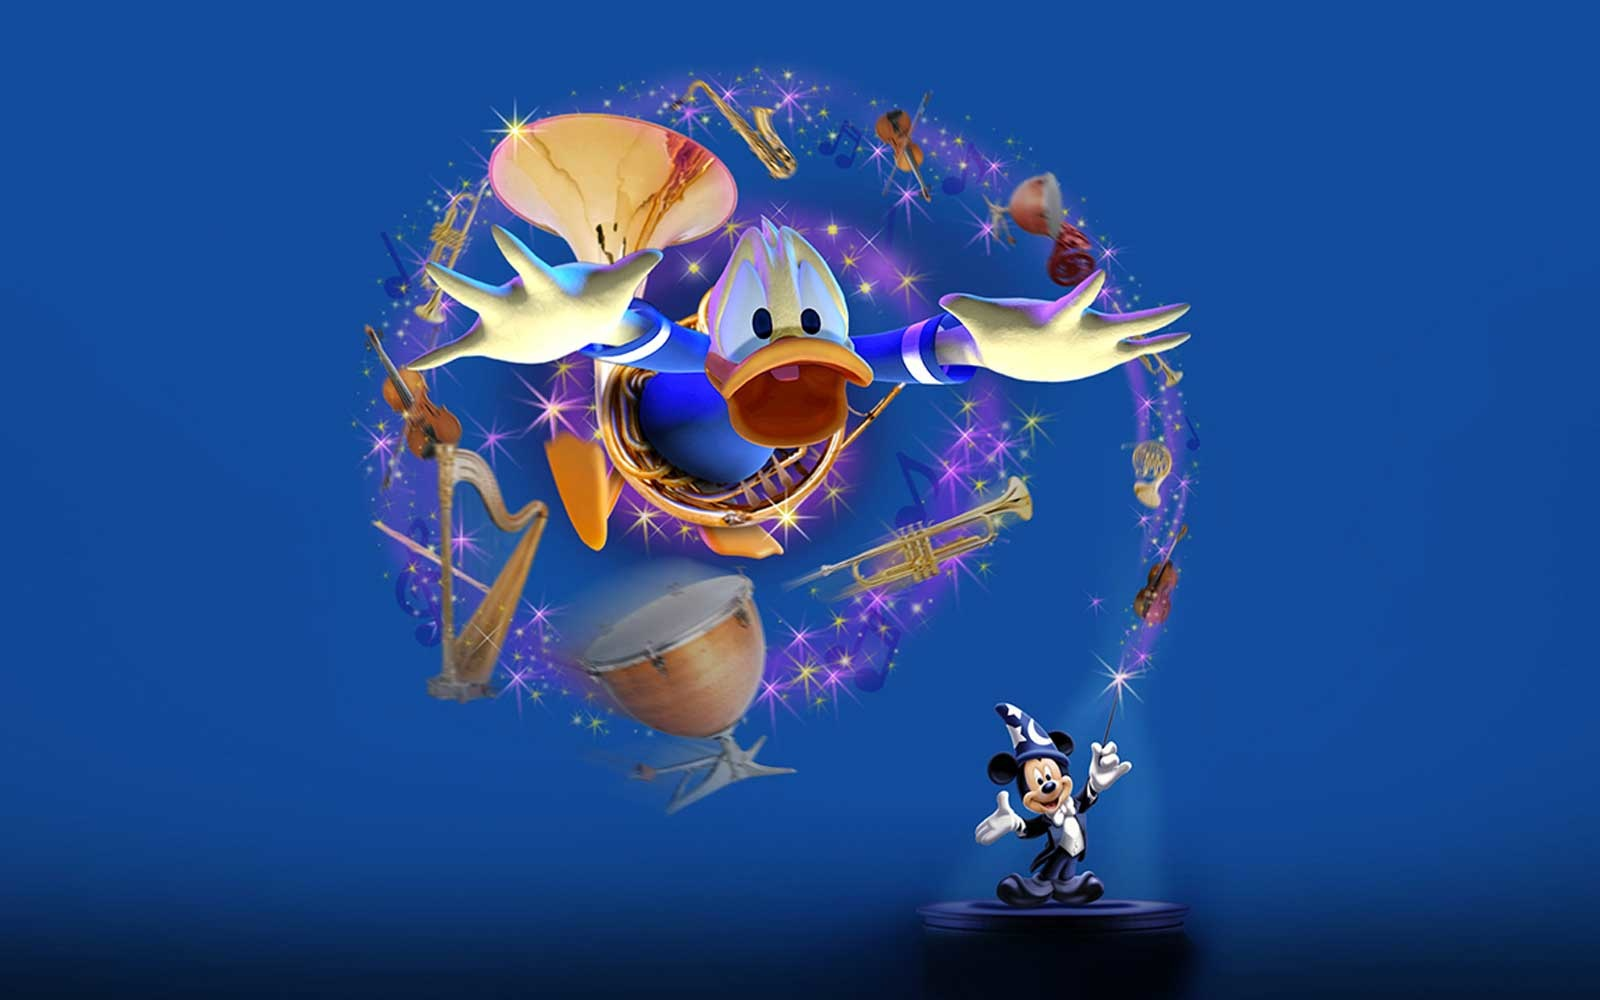 Mickey's PhilharMagic Premieres in April 2019 at Disney California Adventure Park